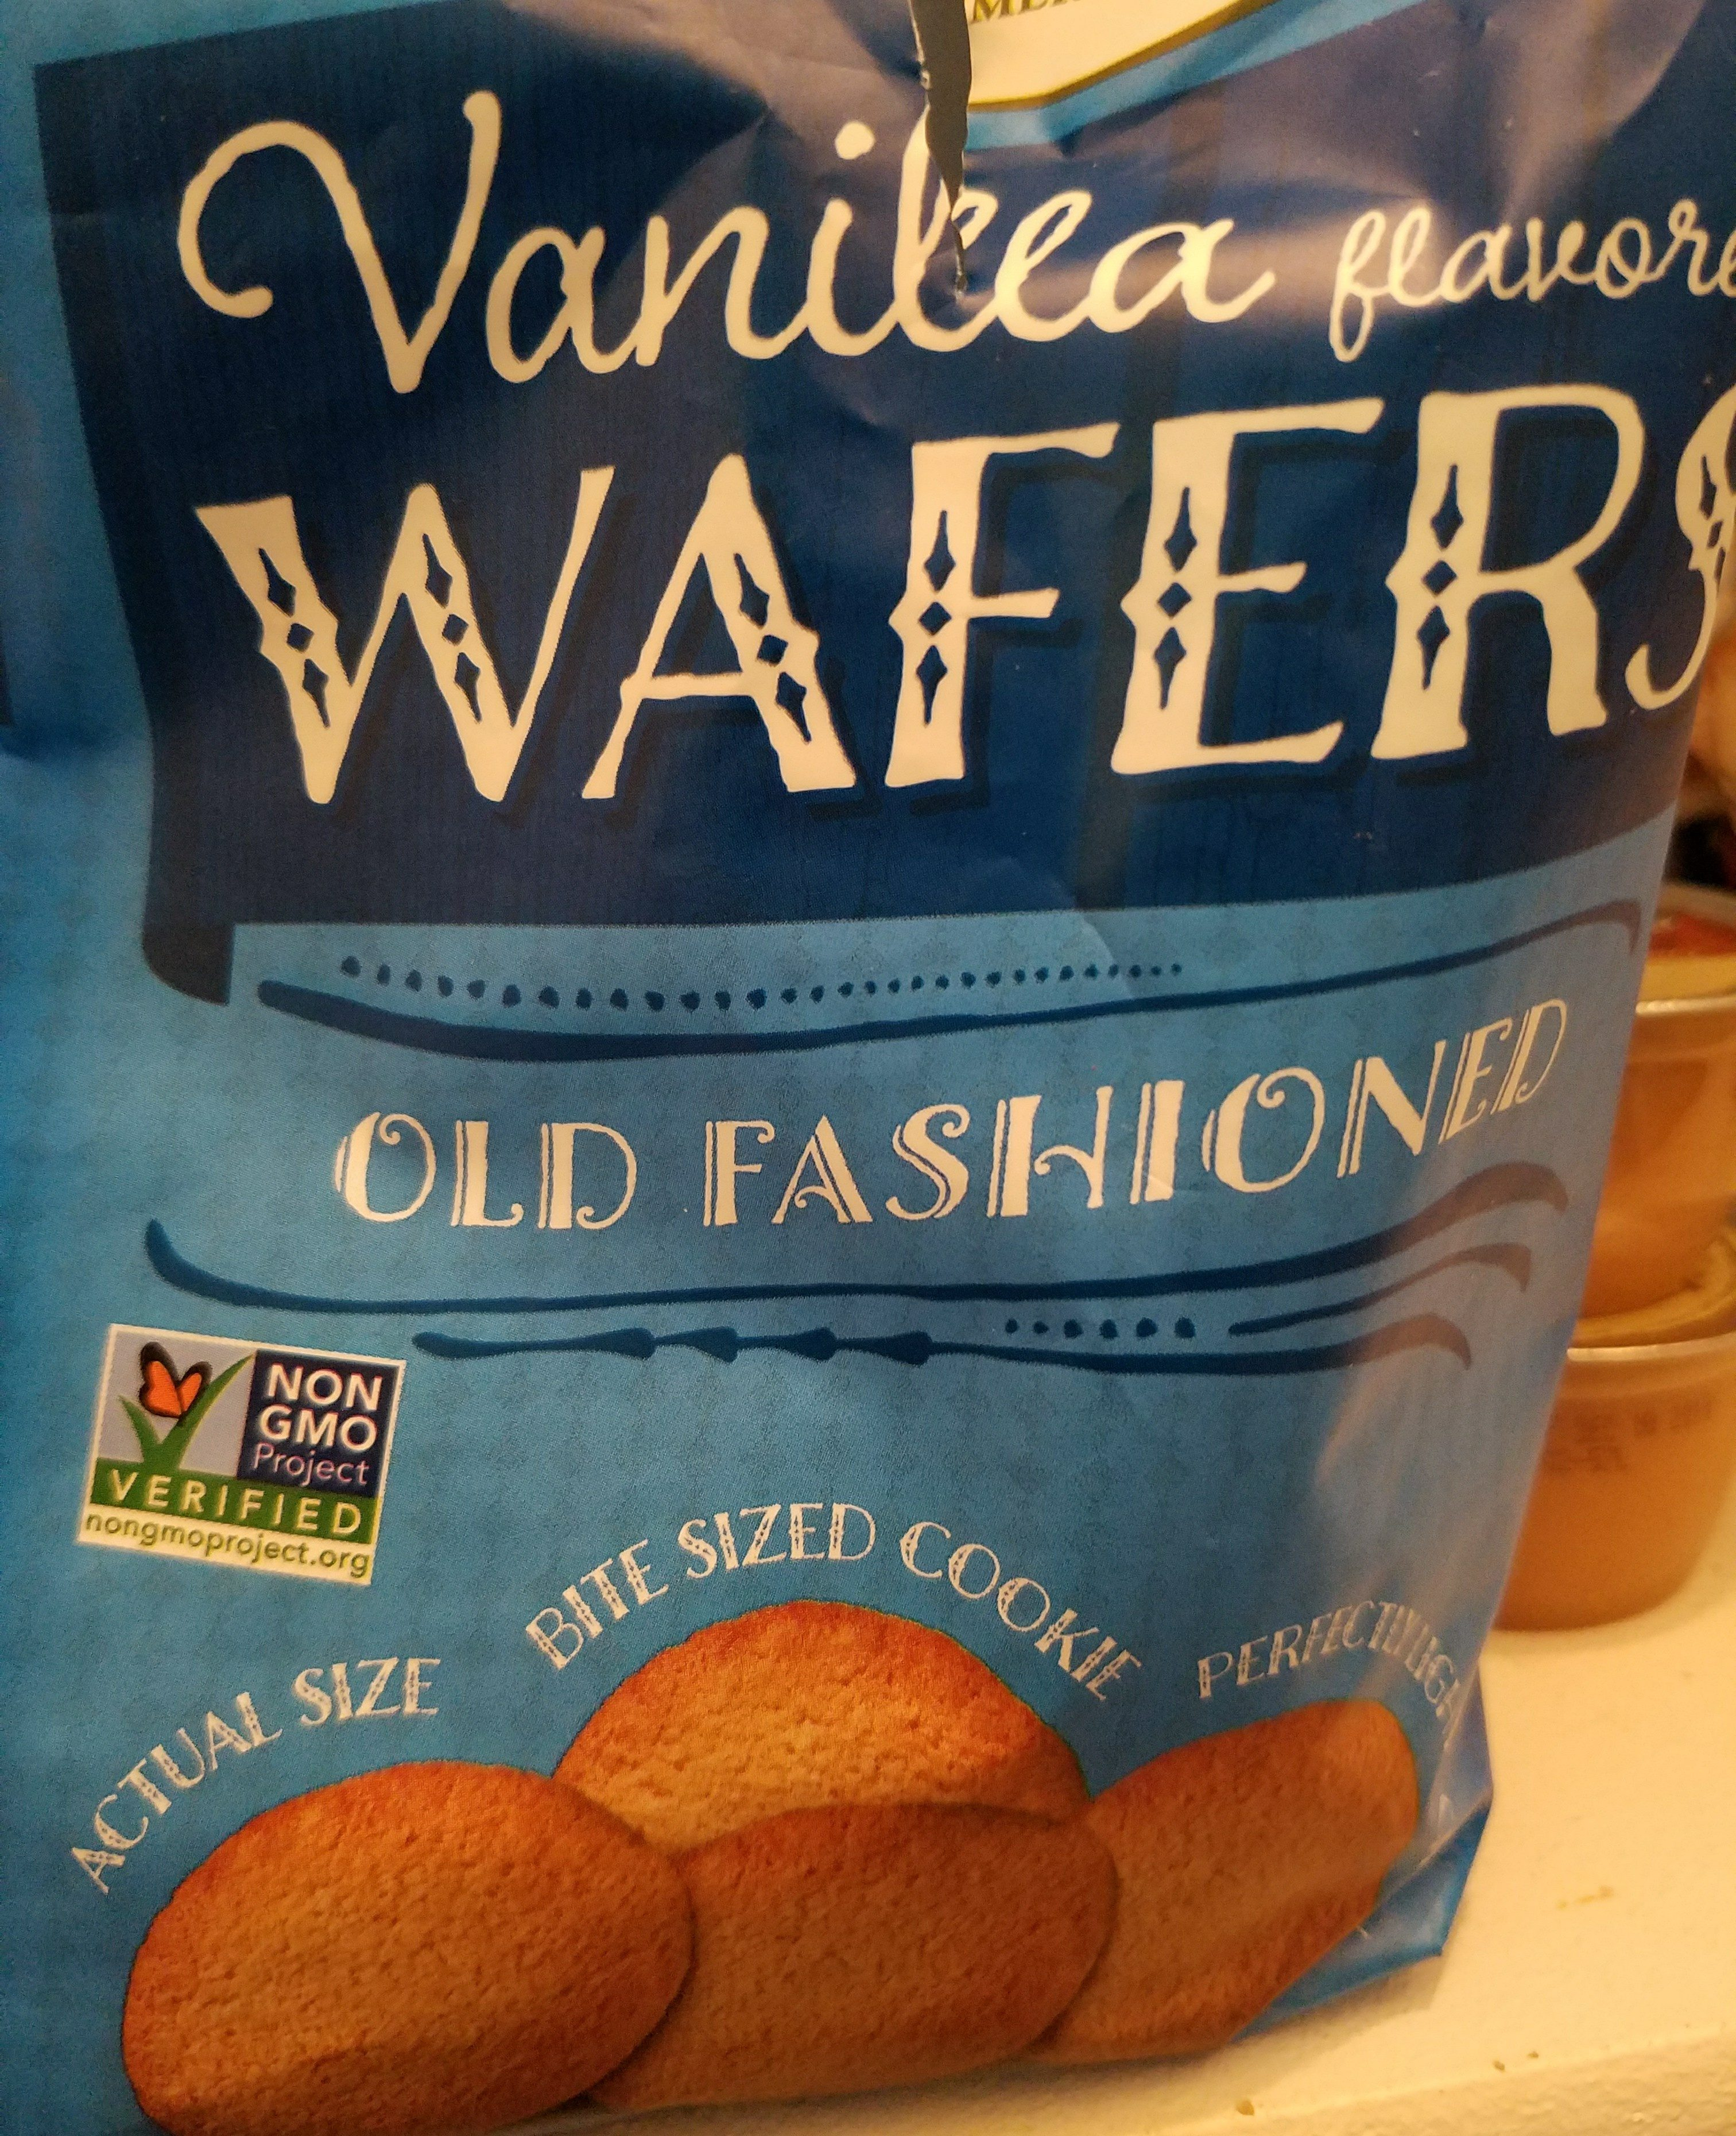 vanilla flavored wafers - Product